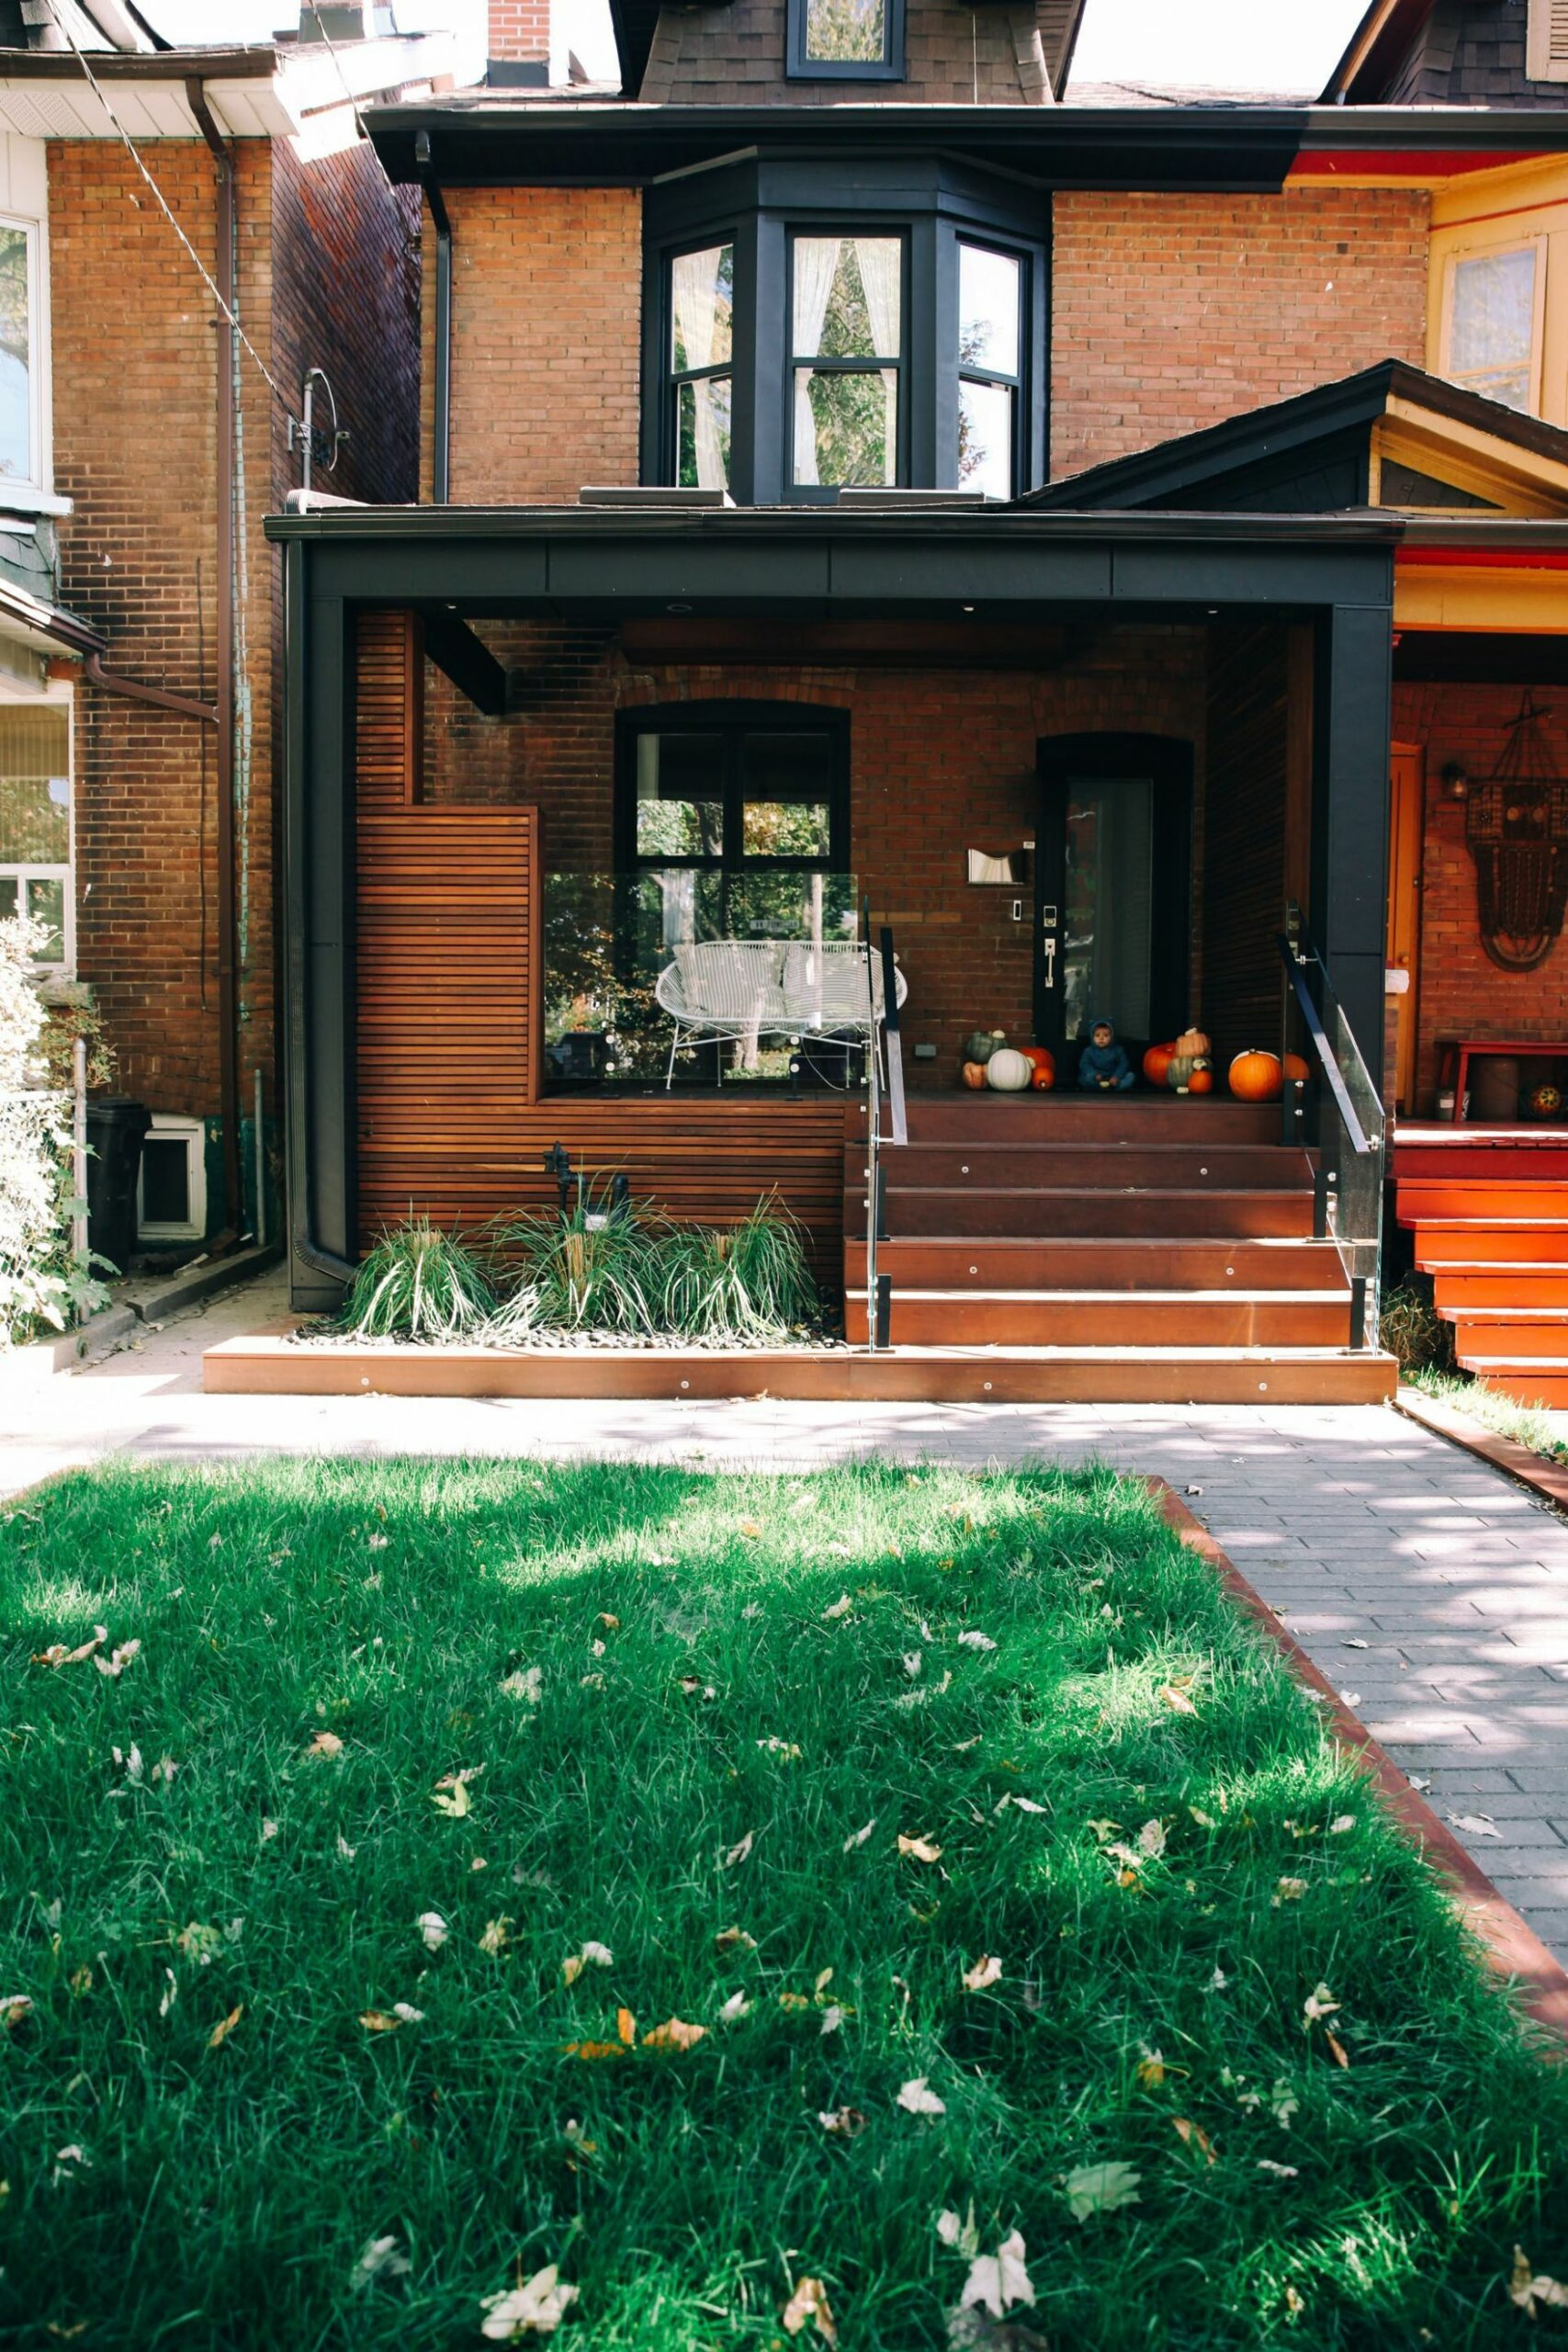 Our Modern Toronto Porch Reveal! (With images) | Brick exterior ...